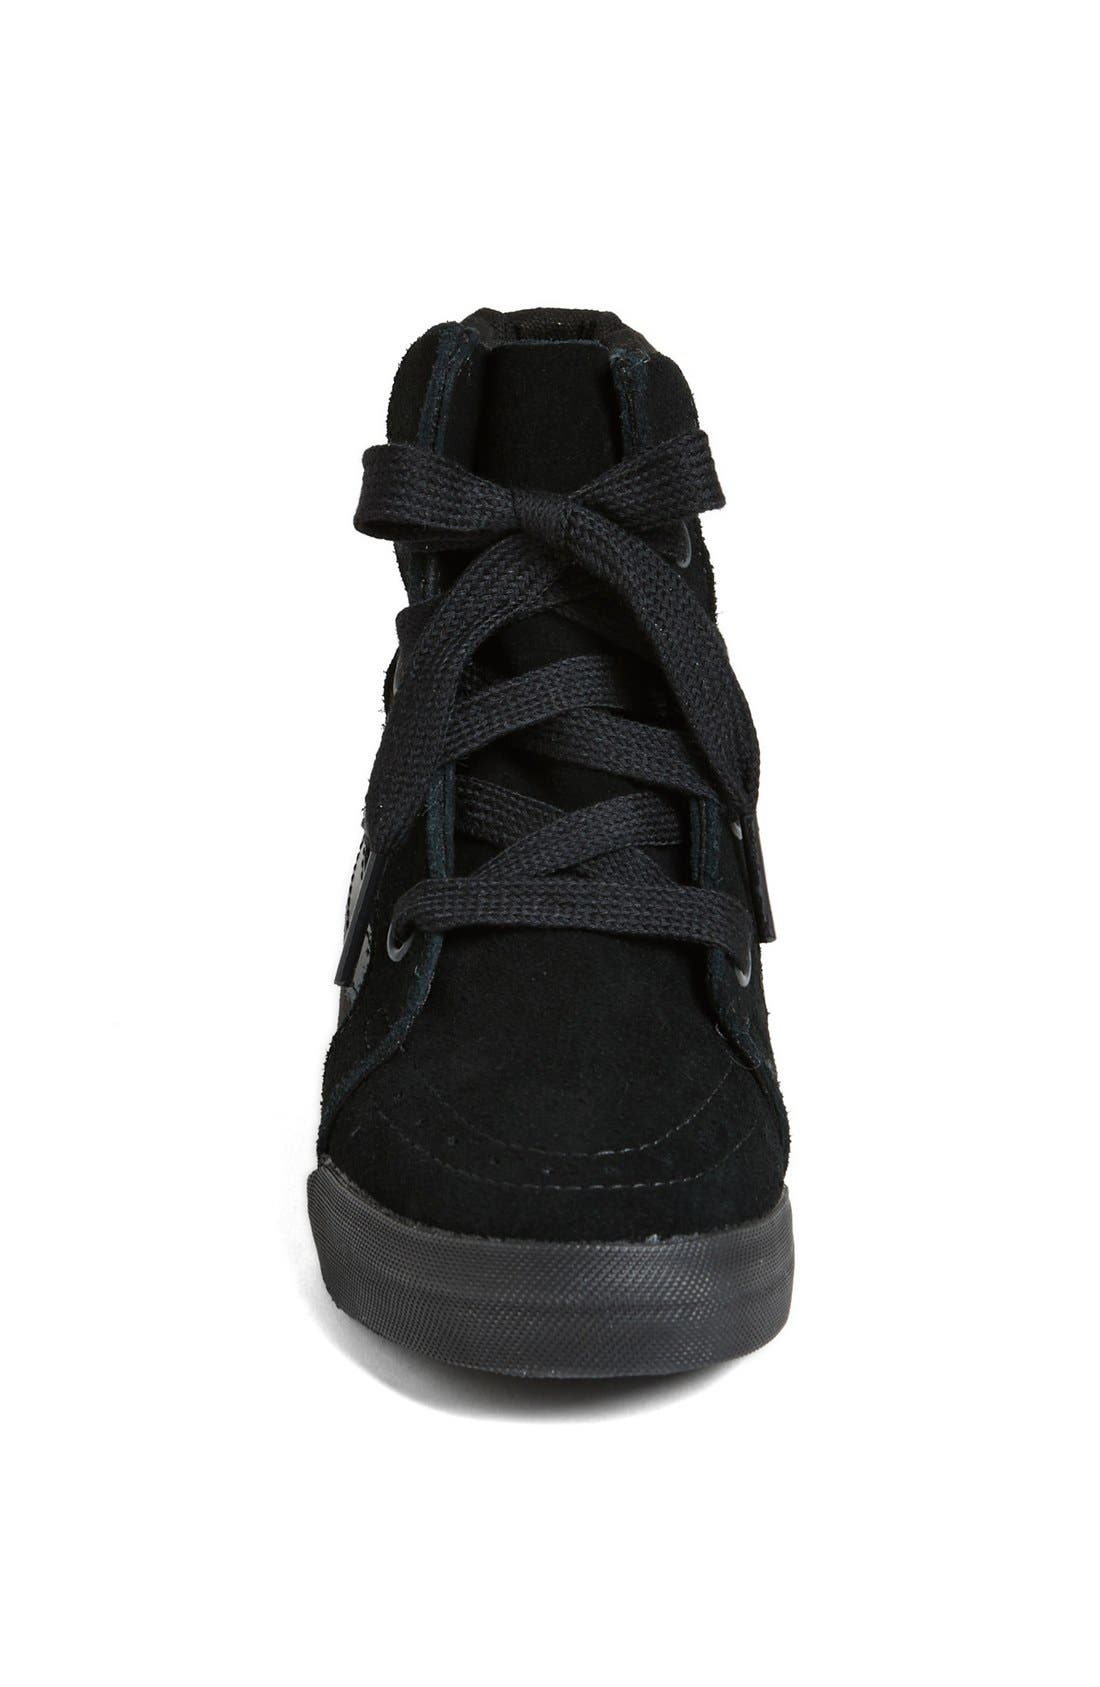 Alternate Image 3  - Vans 'Sk8 Hi' Wedge Sneaker (Women)